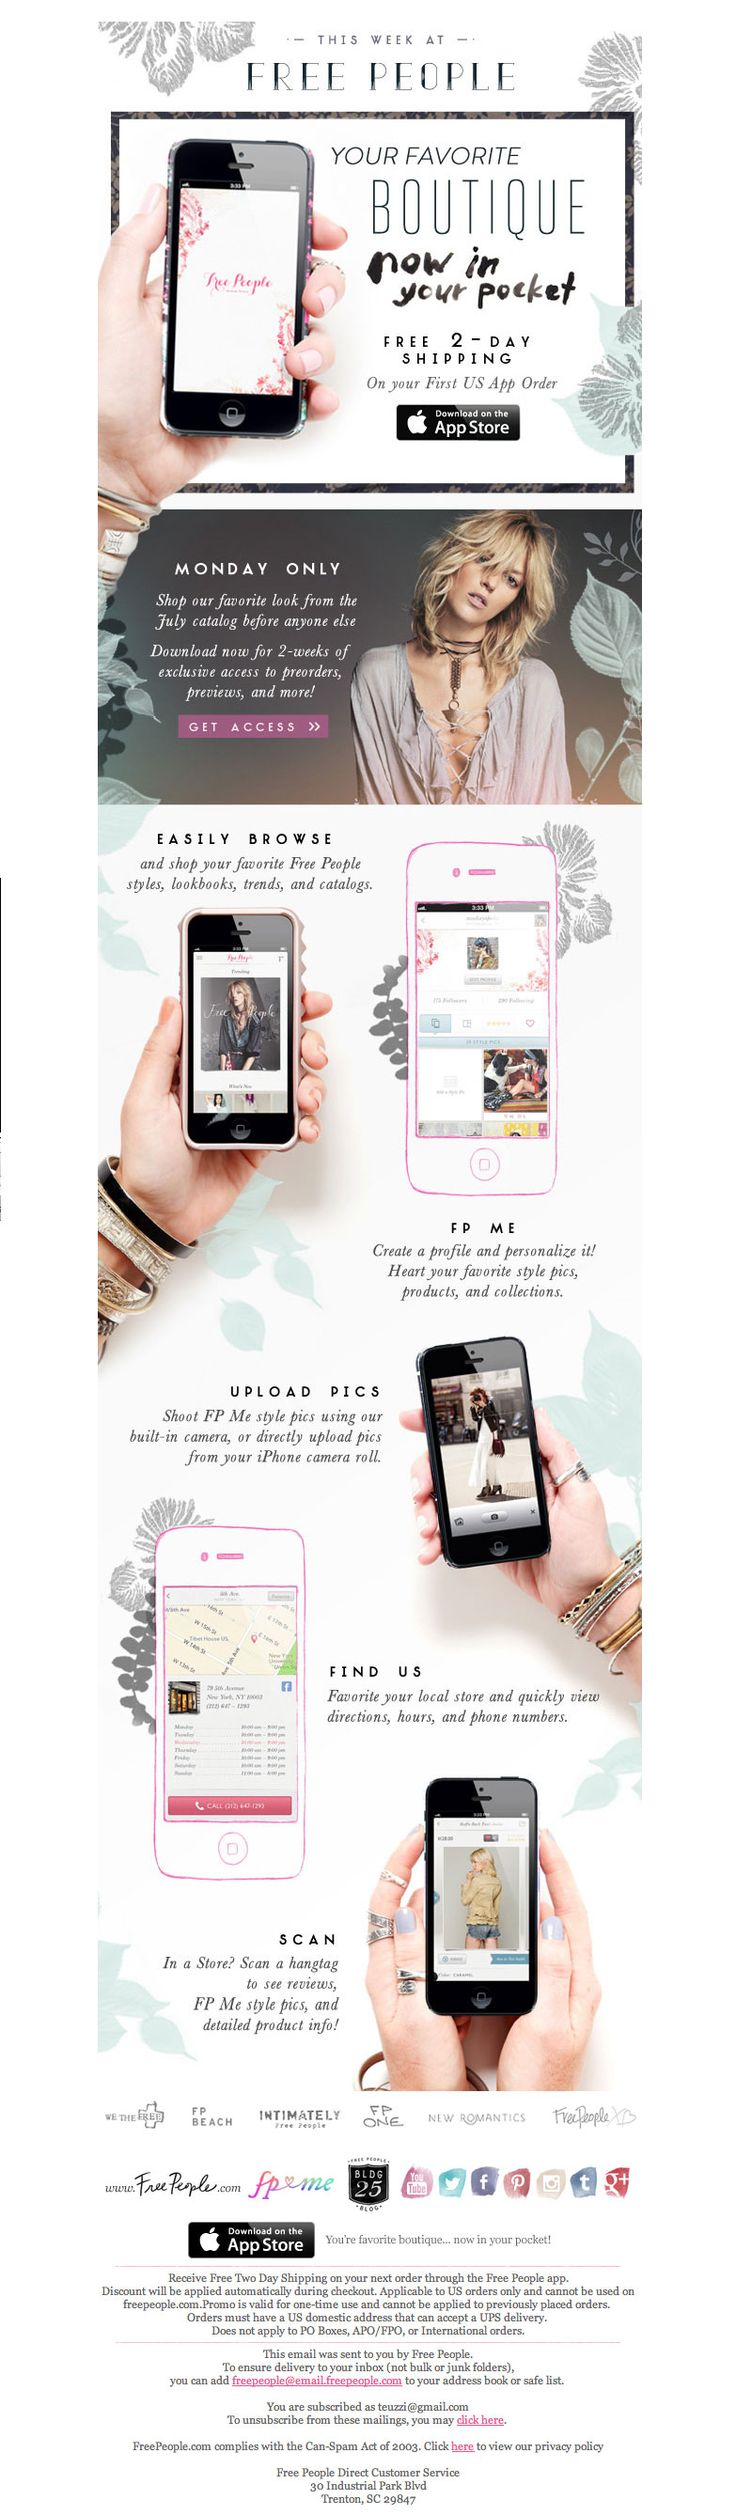 #newsletter Free People #mobile 07.2013